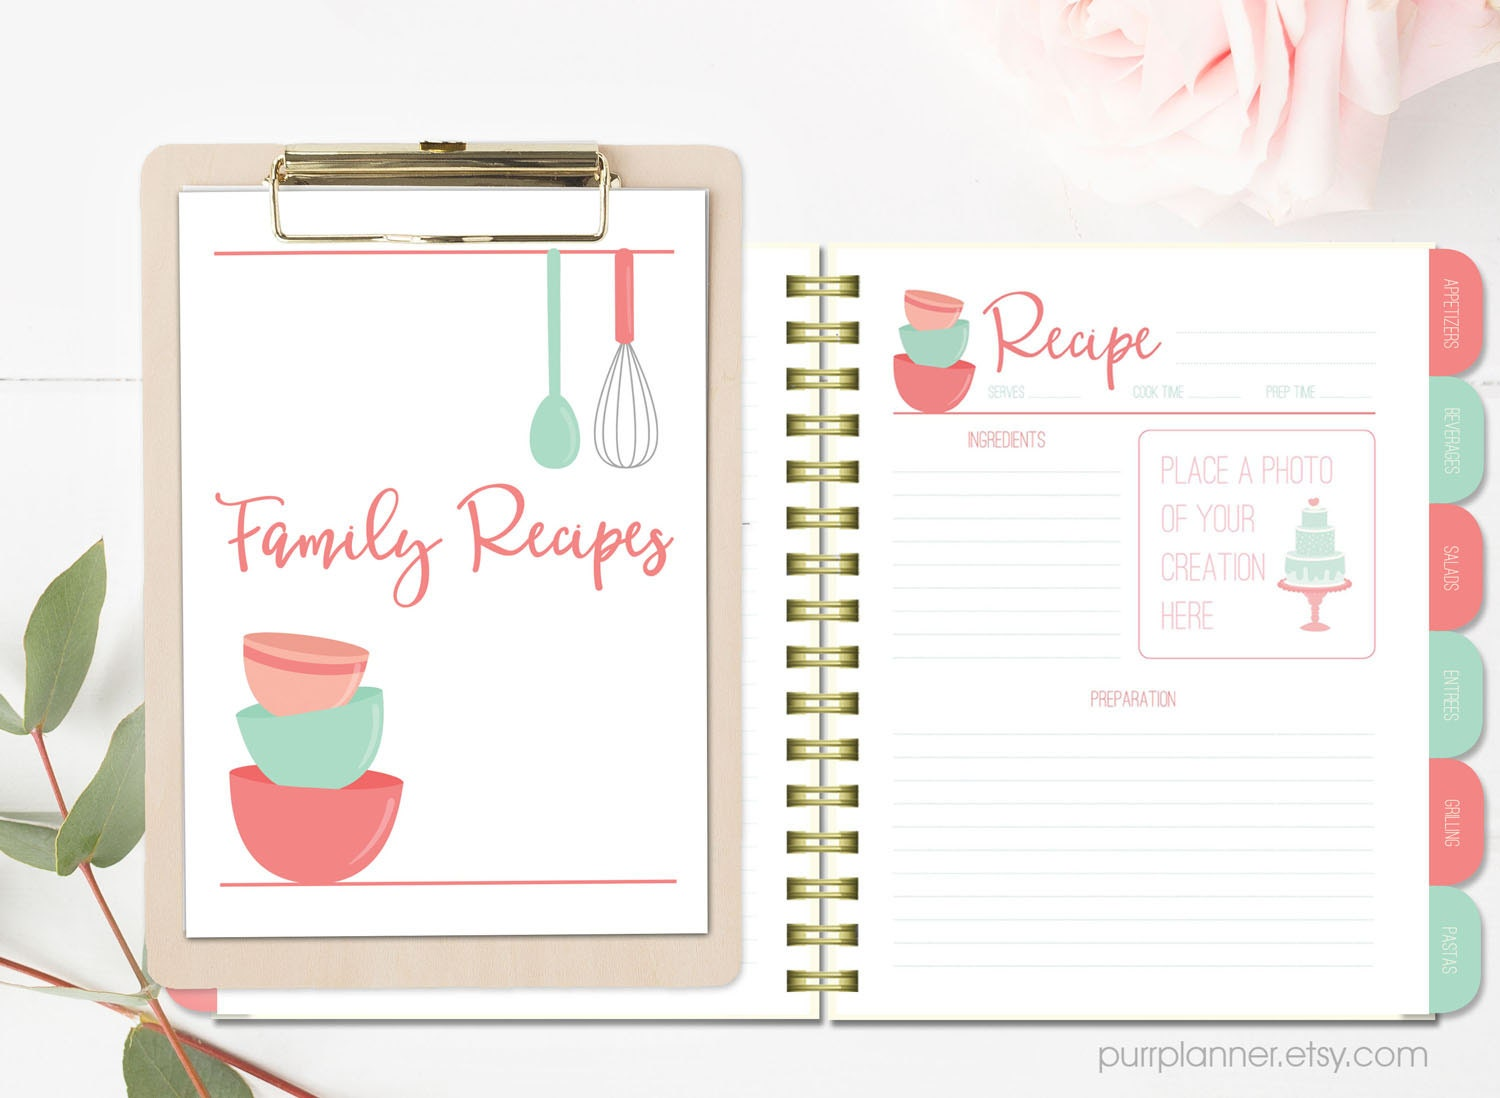 photograph regarding Free Printable Recipe Binder Kit titled Printable recipe binder package, blank cookbook, coral and mint recipe webpages, divider tabs and web pages, recipe organizer, bridal shower reward